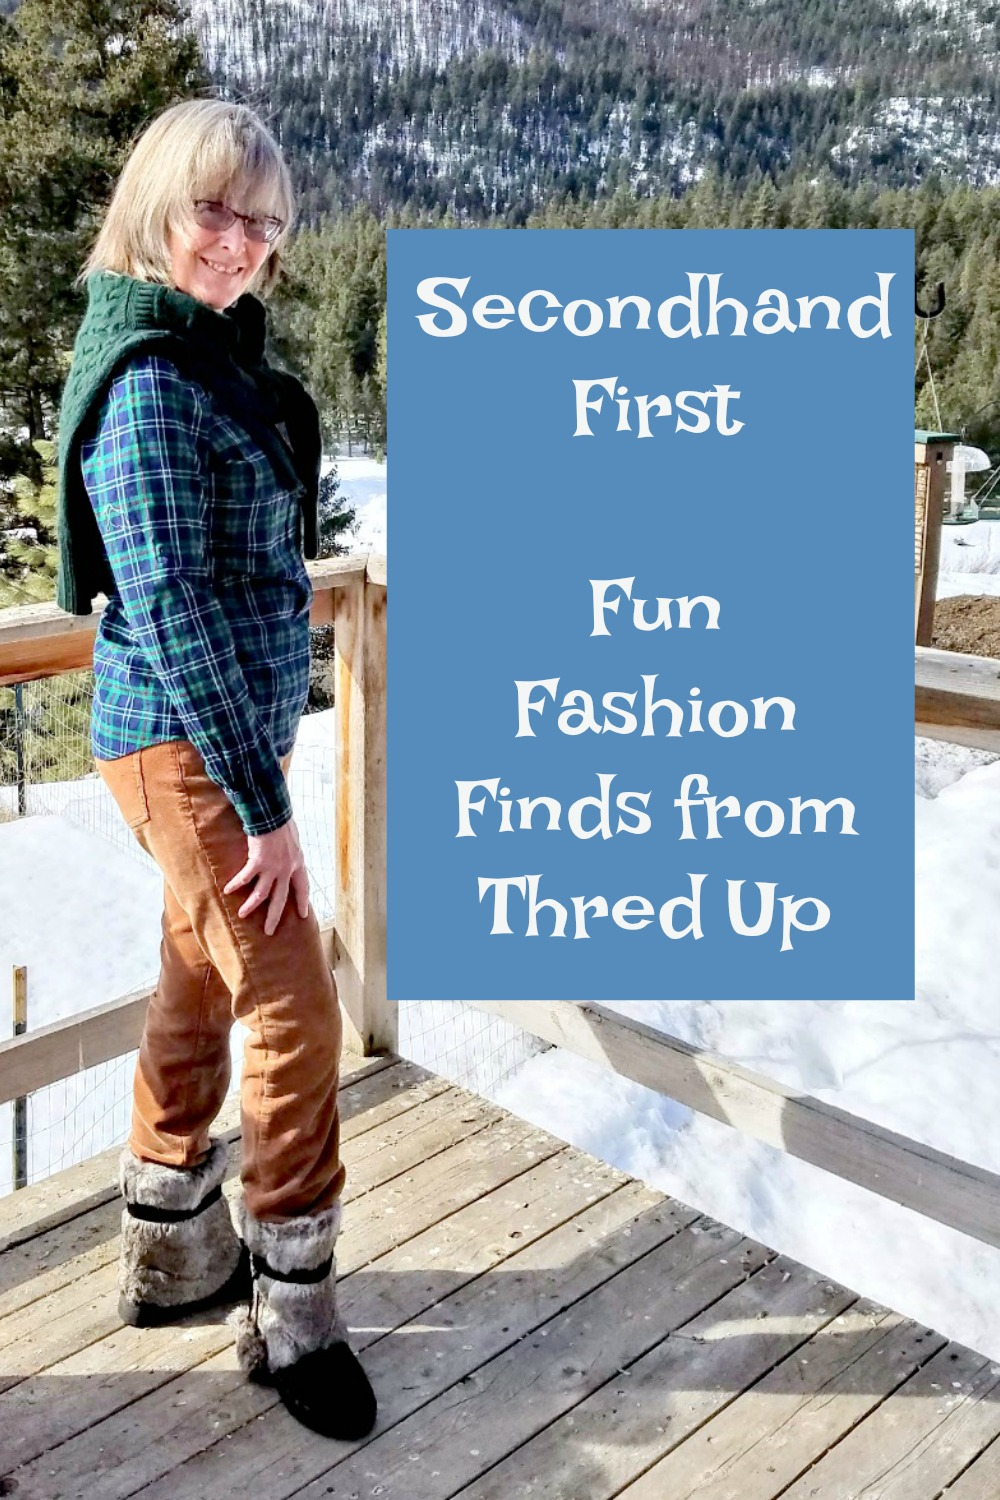 secondhand first, Thred Up, cords, shirt and sweater